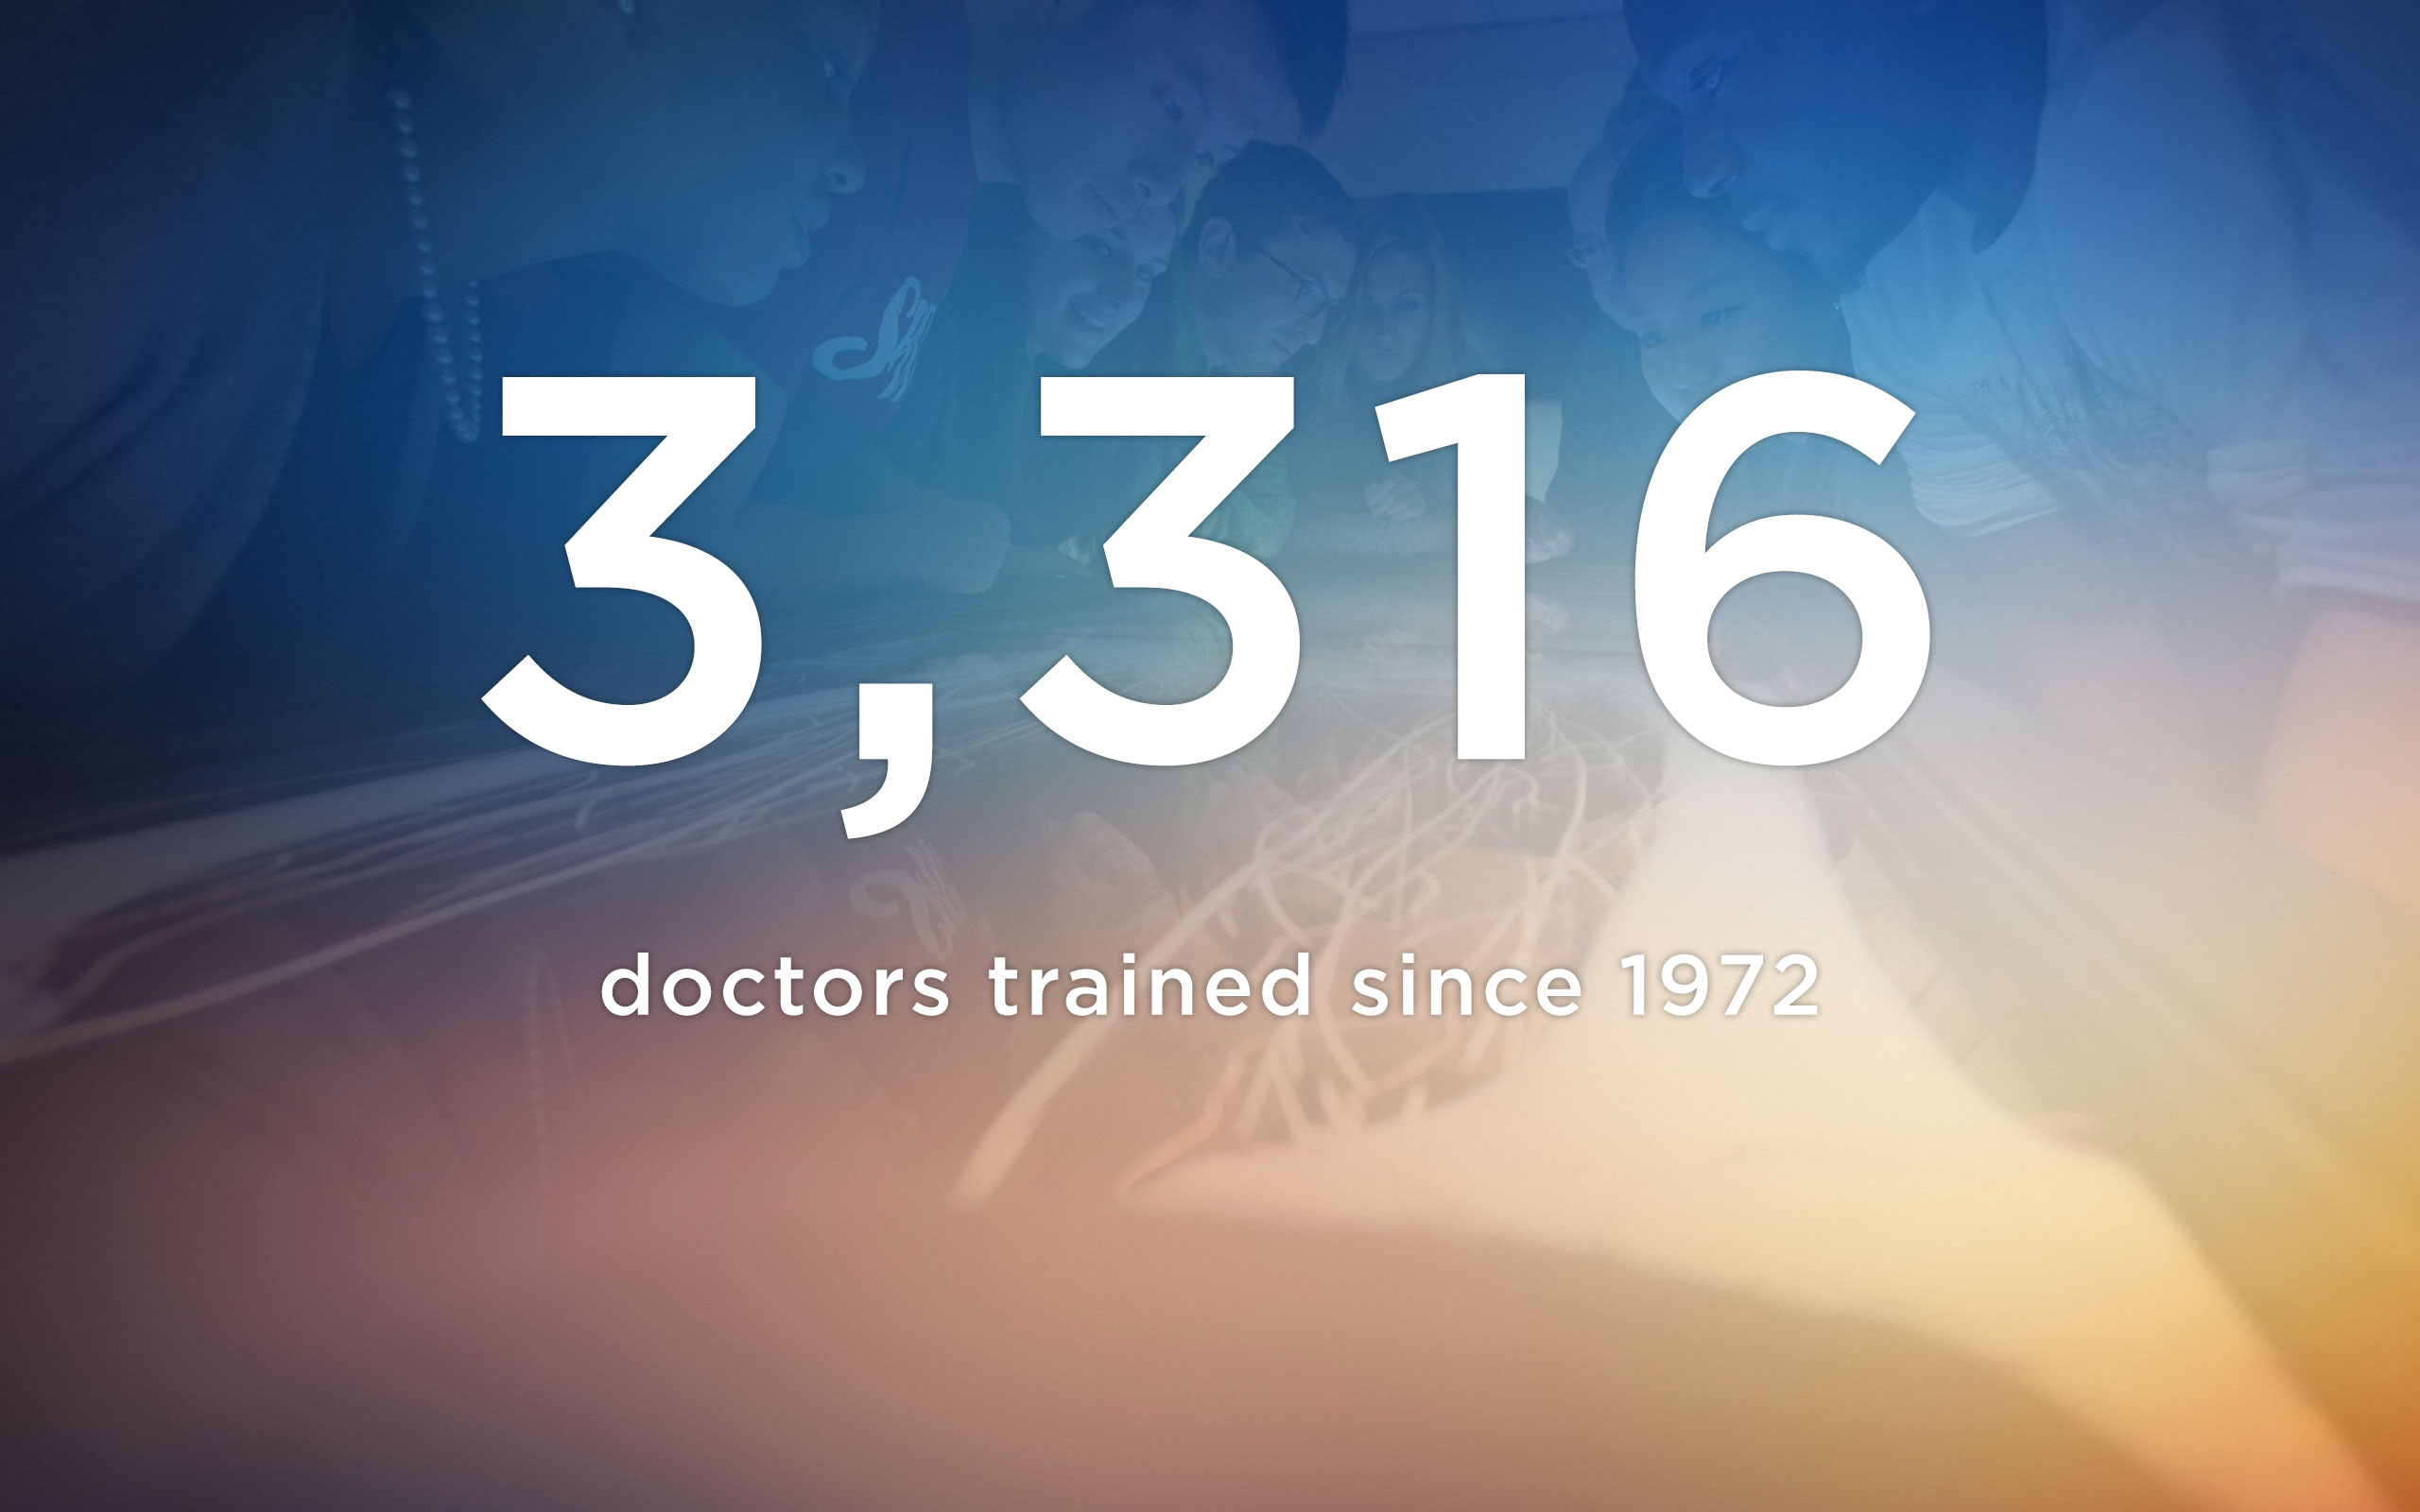 3316 – number of doctors trained since 1972 (as of class of 2015)